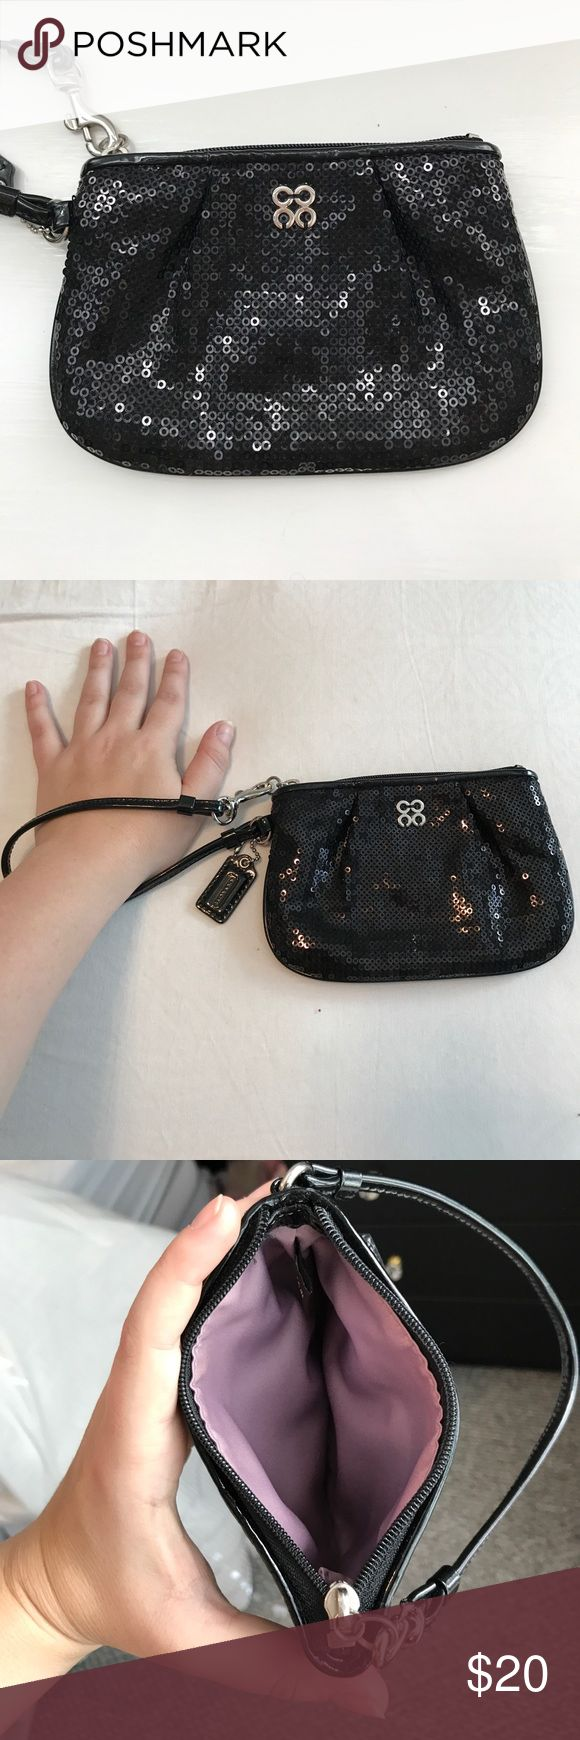 Black Sequin Coach Wristlet Never used black sequin Coach wristlet with purple satin lining. Coach Bags Clutches & Wristlets